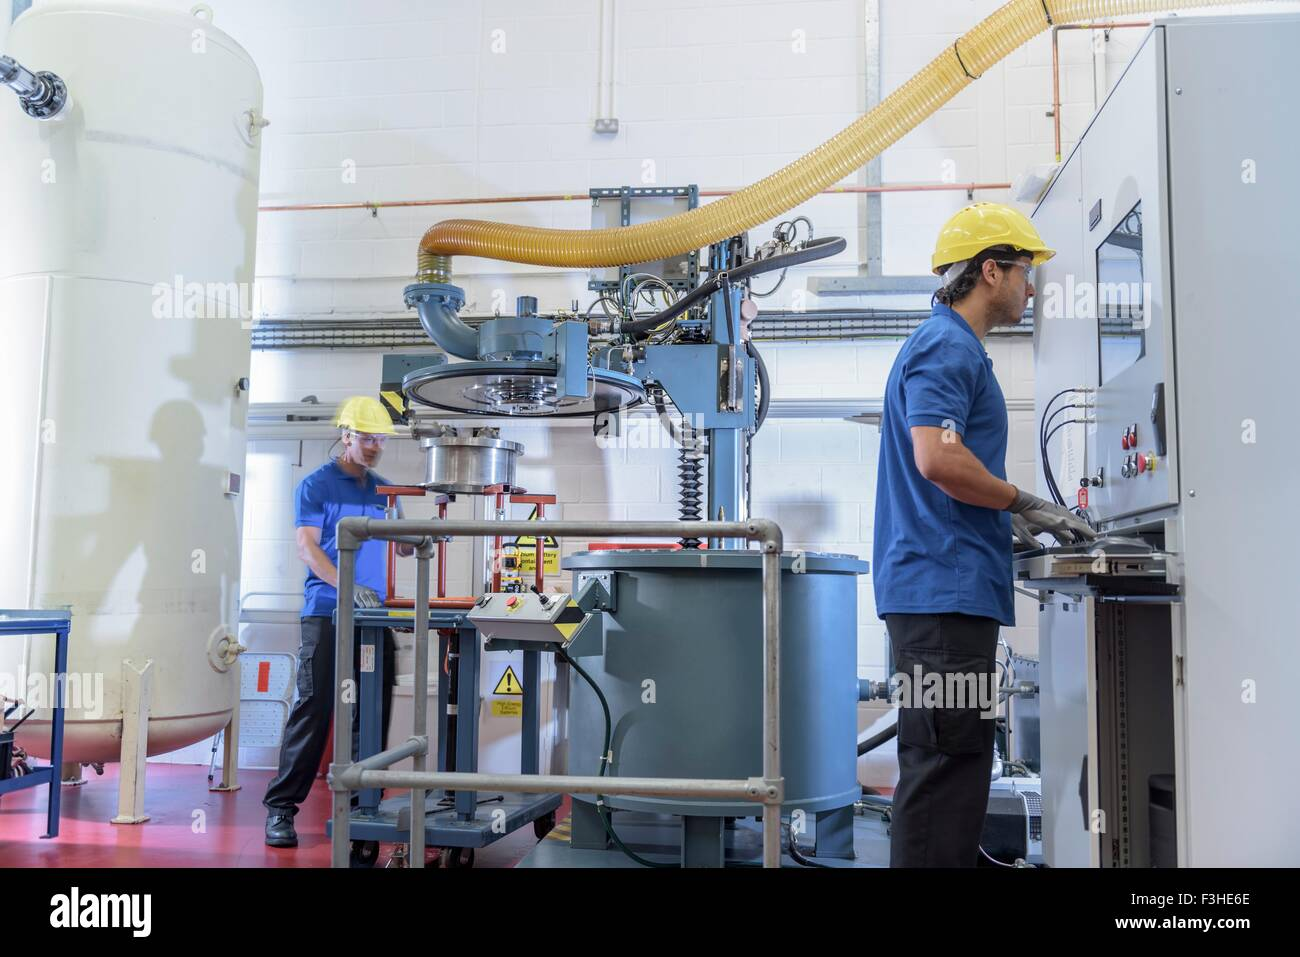 Workers operating environmental testing equipment in electronics factory - Stock Image